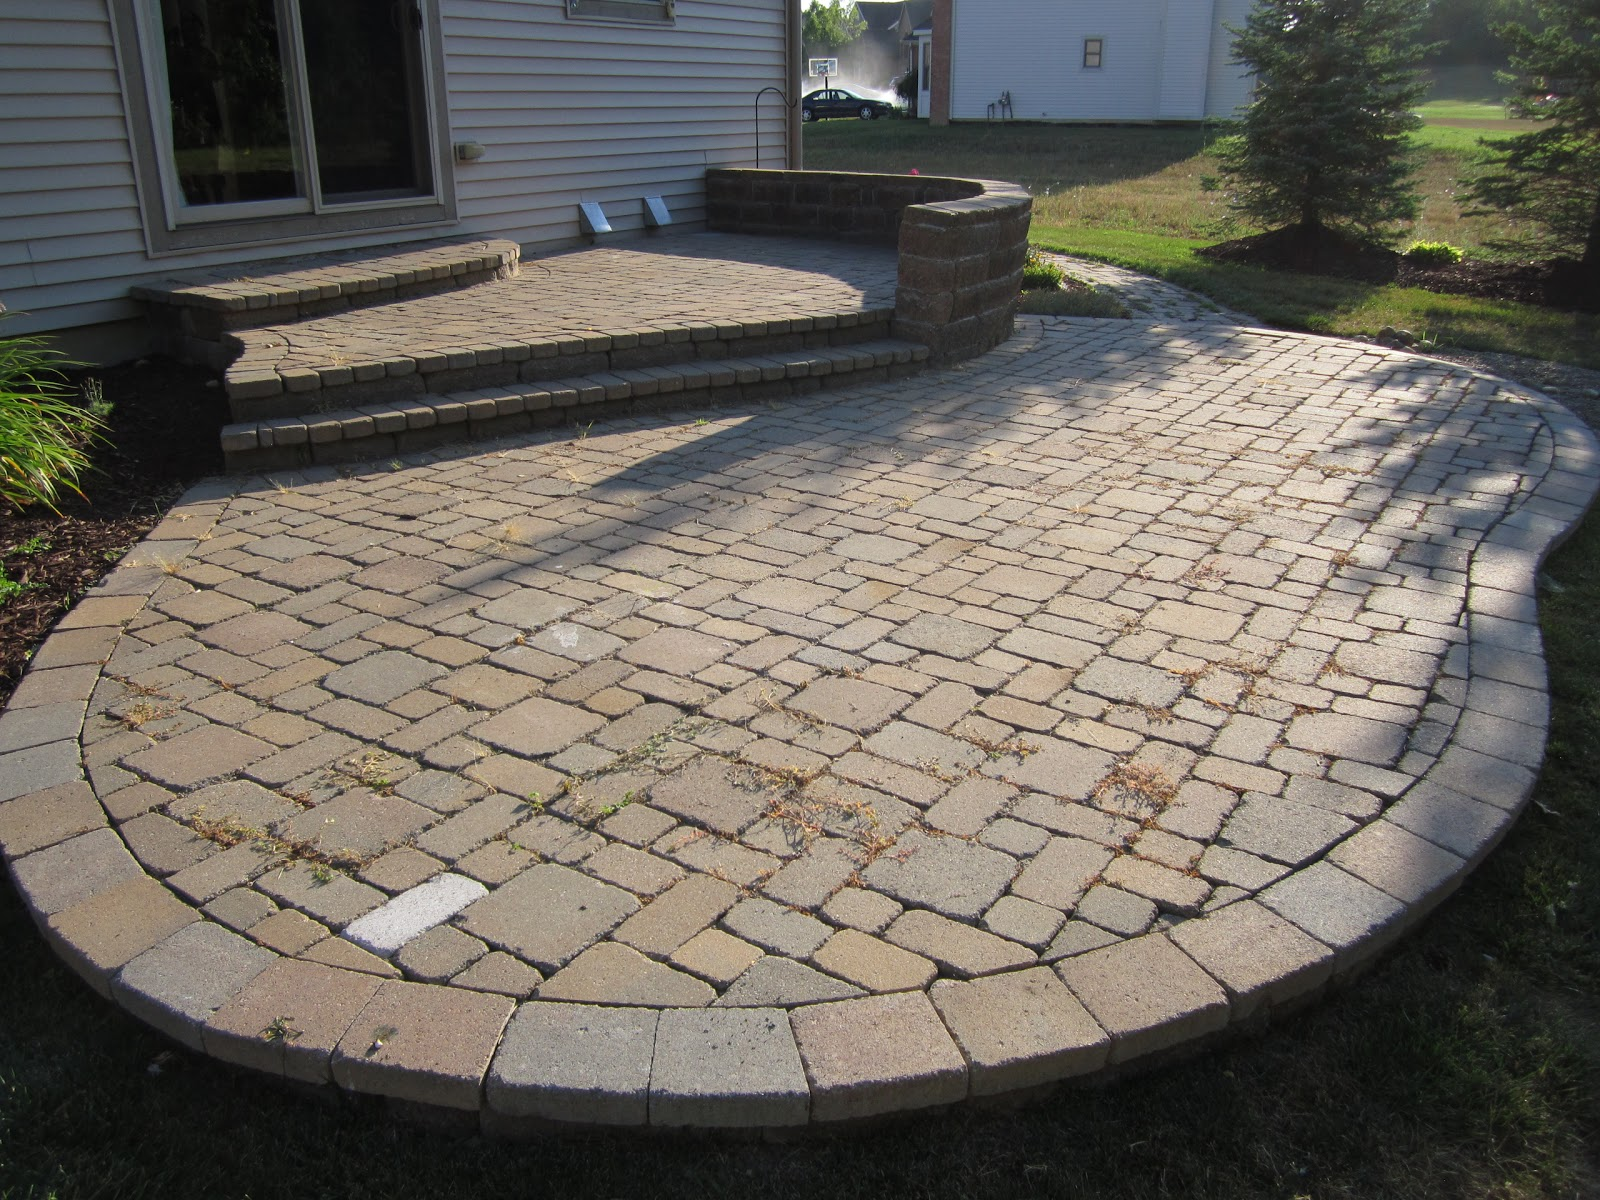 Brick Pavers,Canton,Ann Arbor,Plymouth,Patio,Patios,Repair ... on Brick Paver Patio Designs id=43983